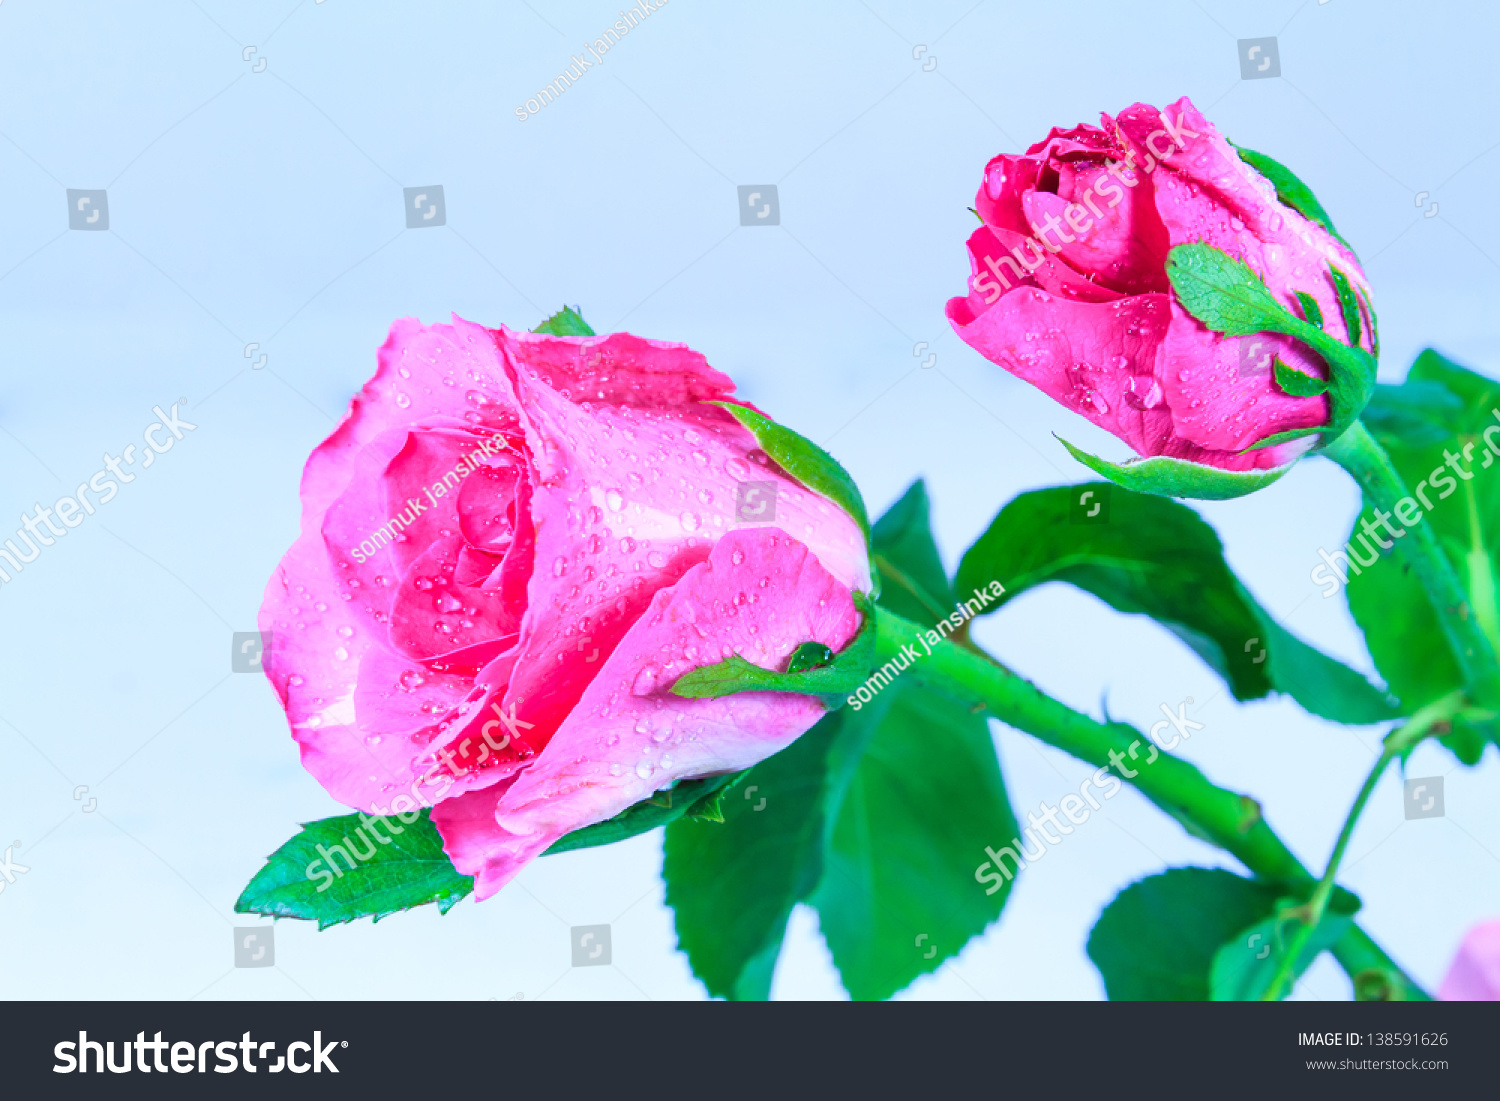 A rose is a flower that represents friendship or love for Flowers that represent love